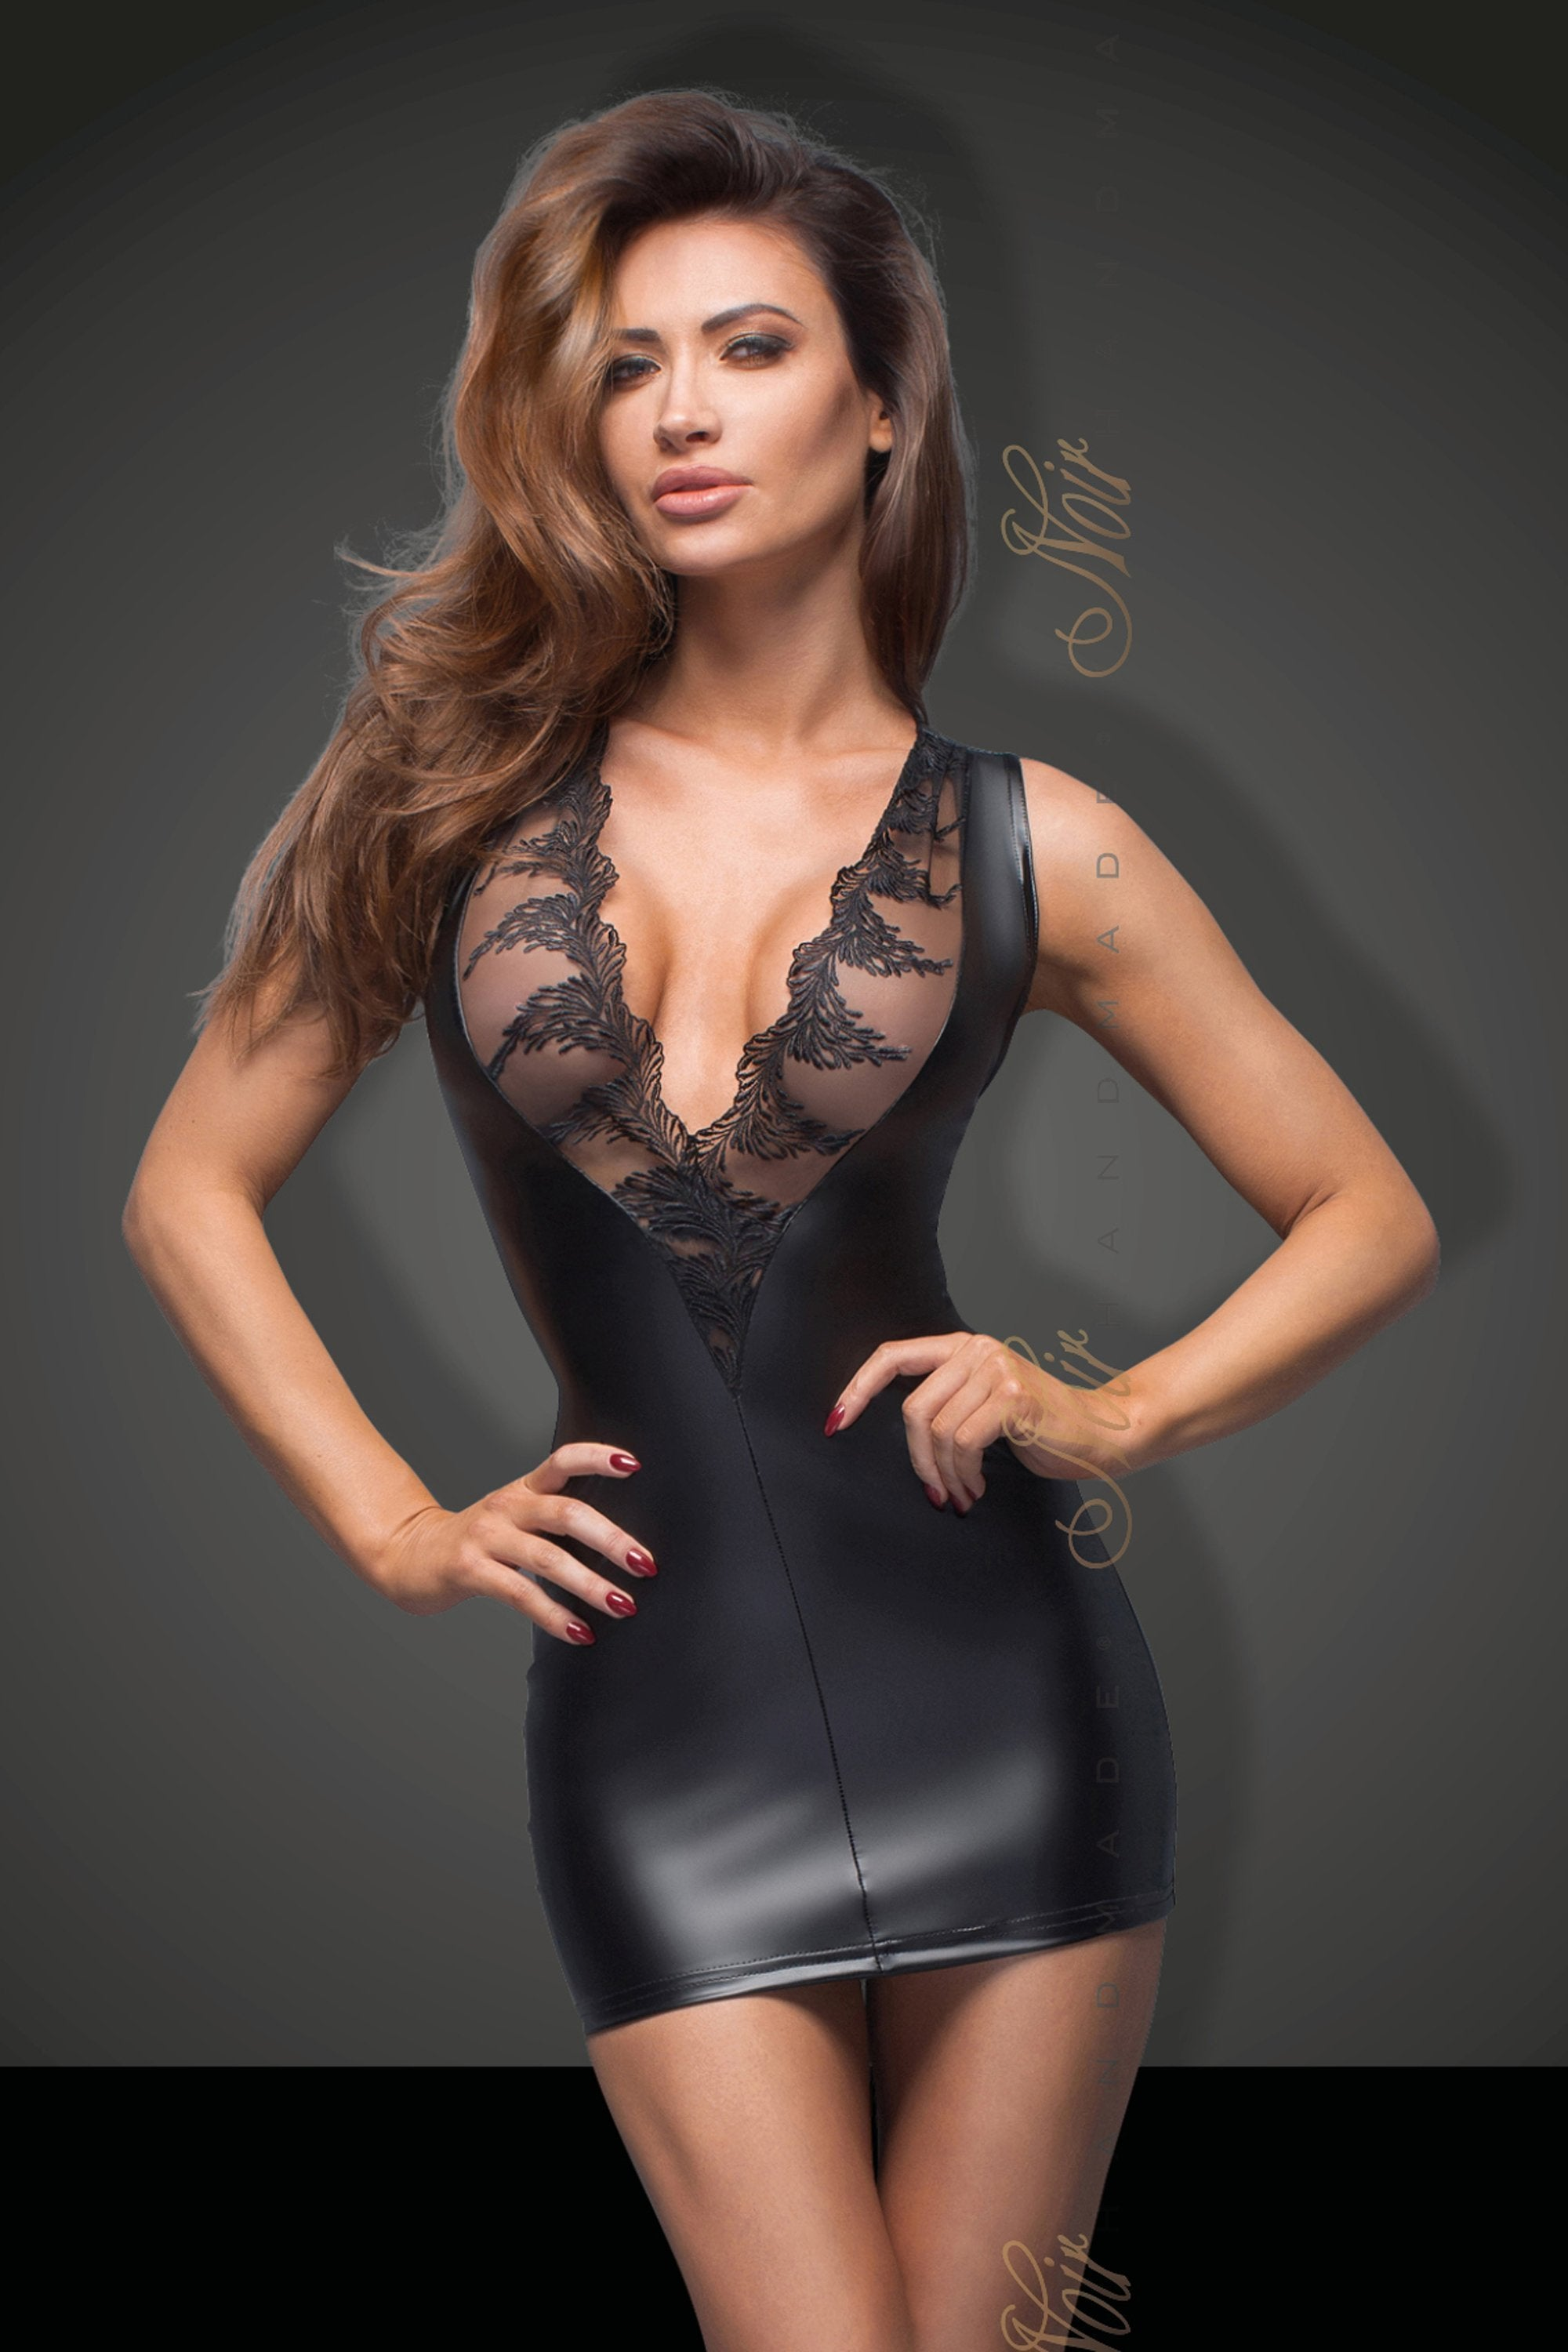 Noir Handmade Dress UK 8 / Black Black Powerwetlook Minidress With Lace Cleavage F168